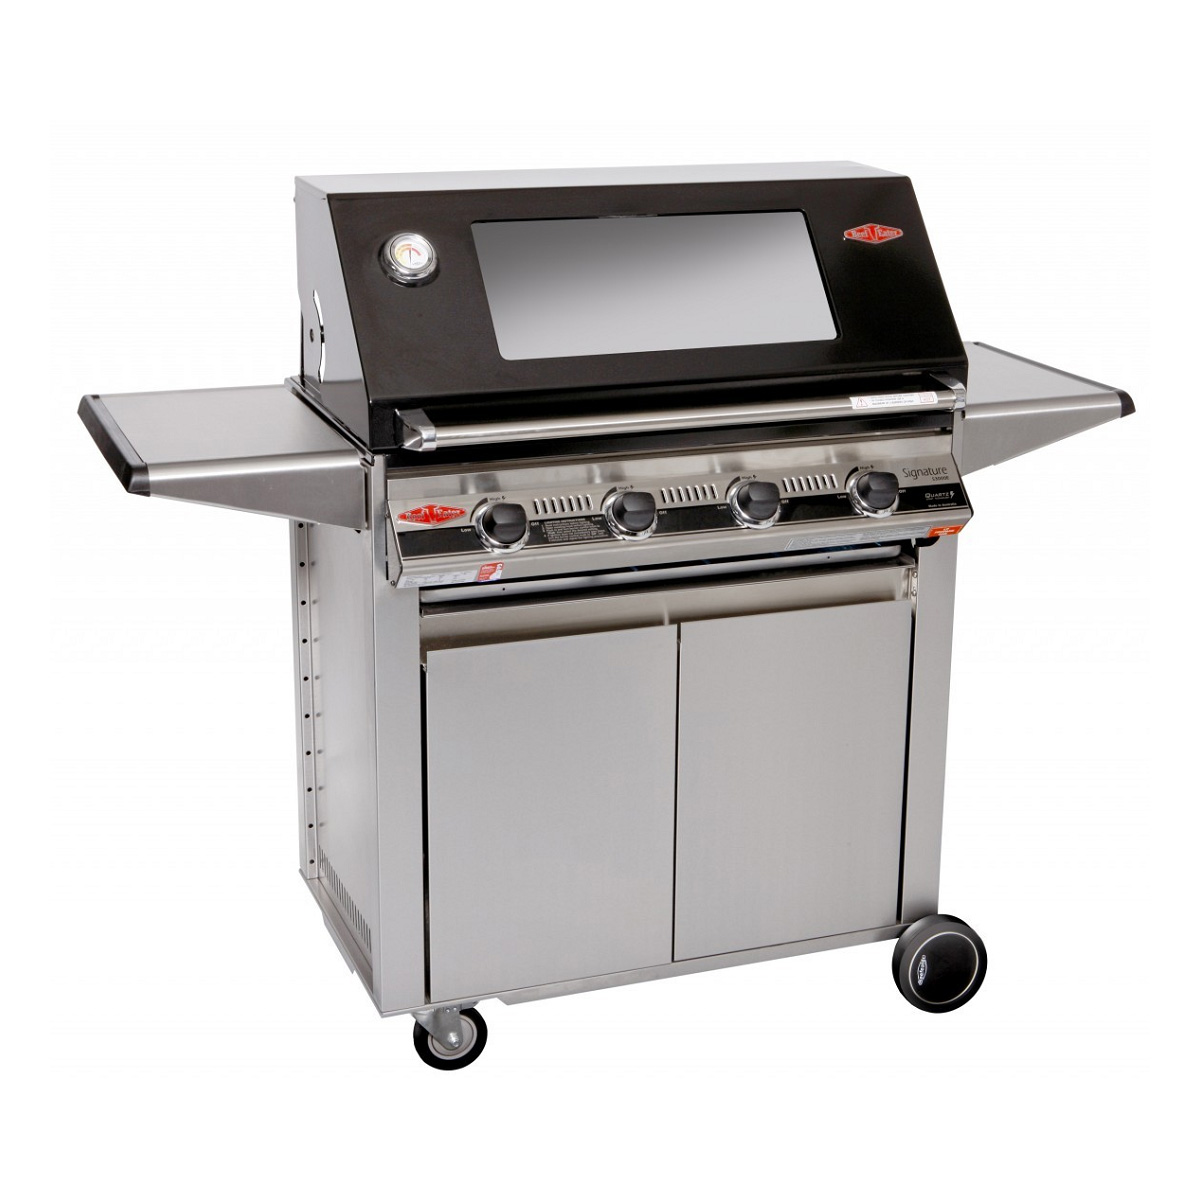 Beefeater 4 Burner Signature 3000E Mobile BBQ 19242